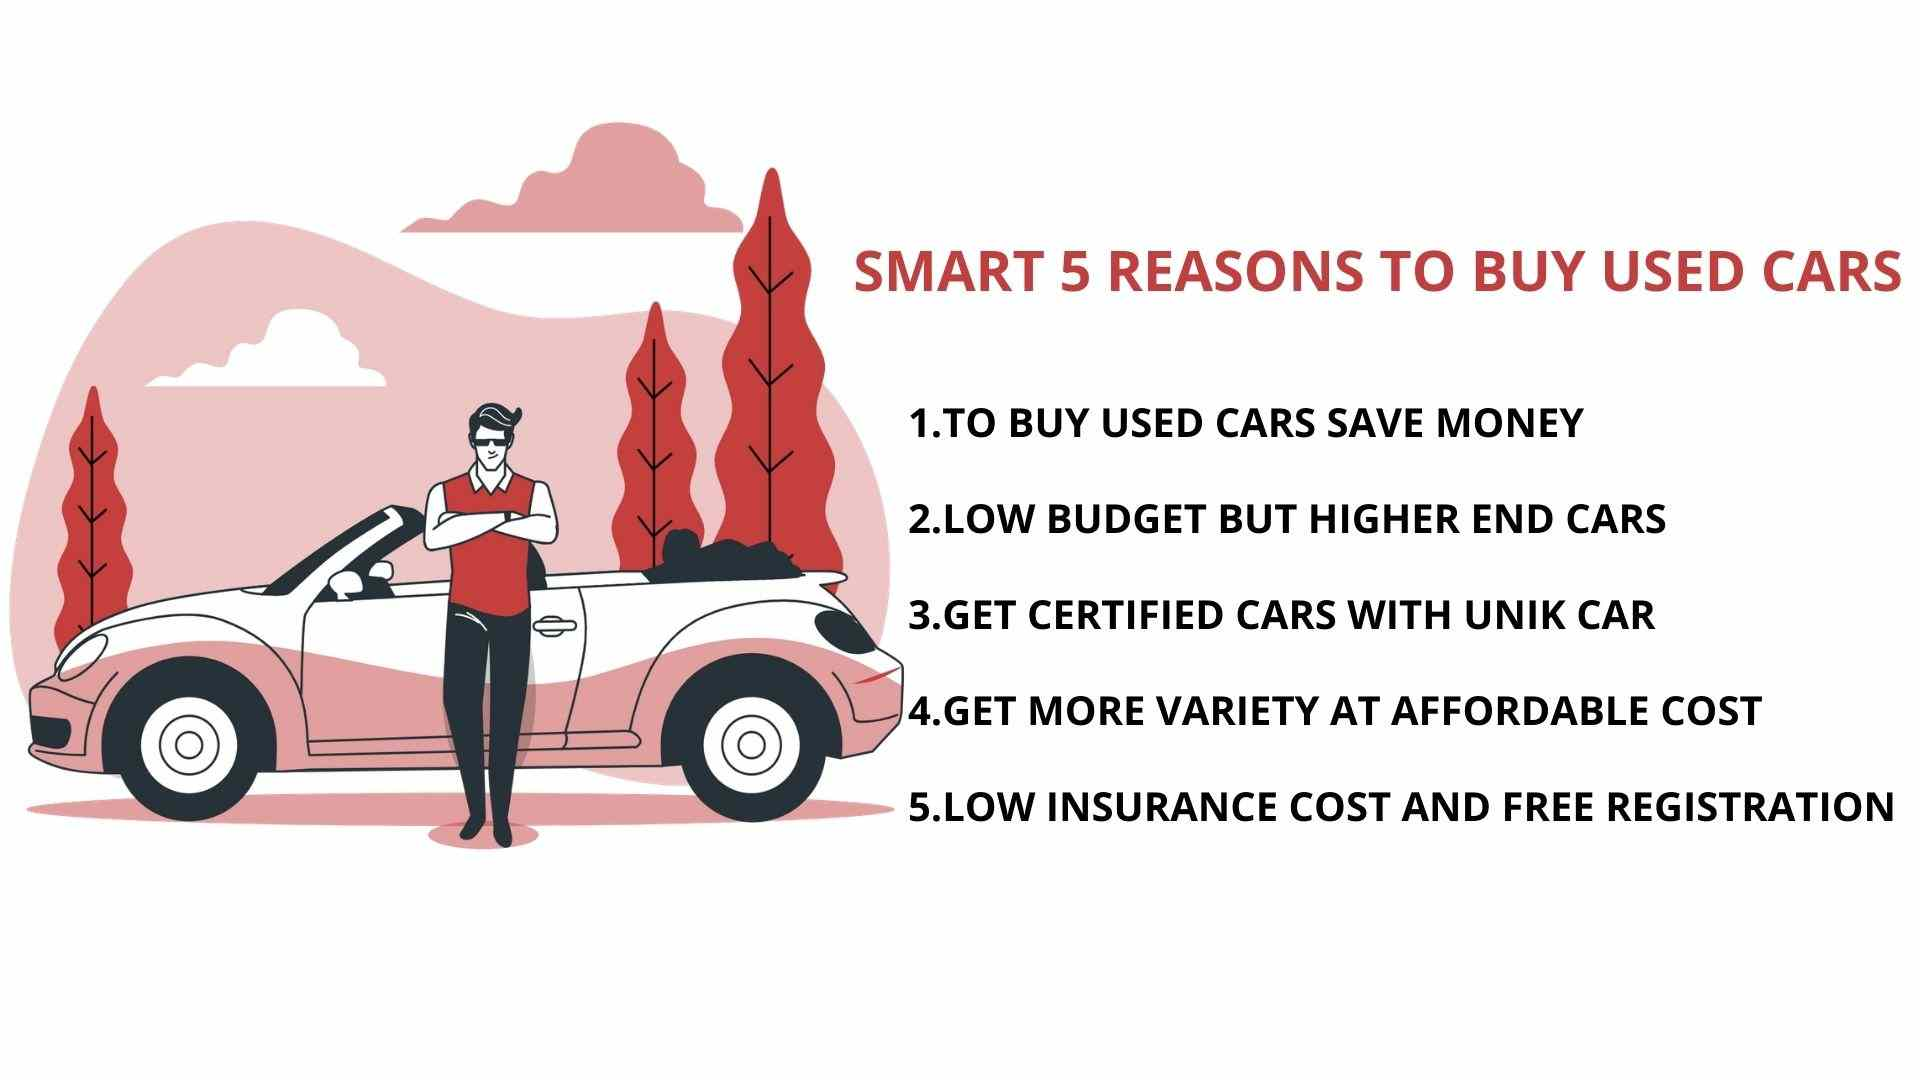 Reasons to buy used cars